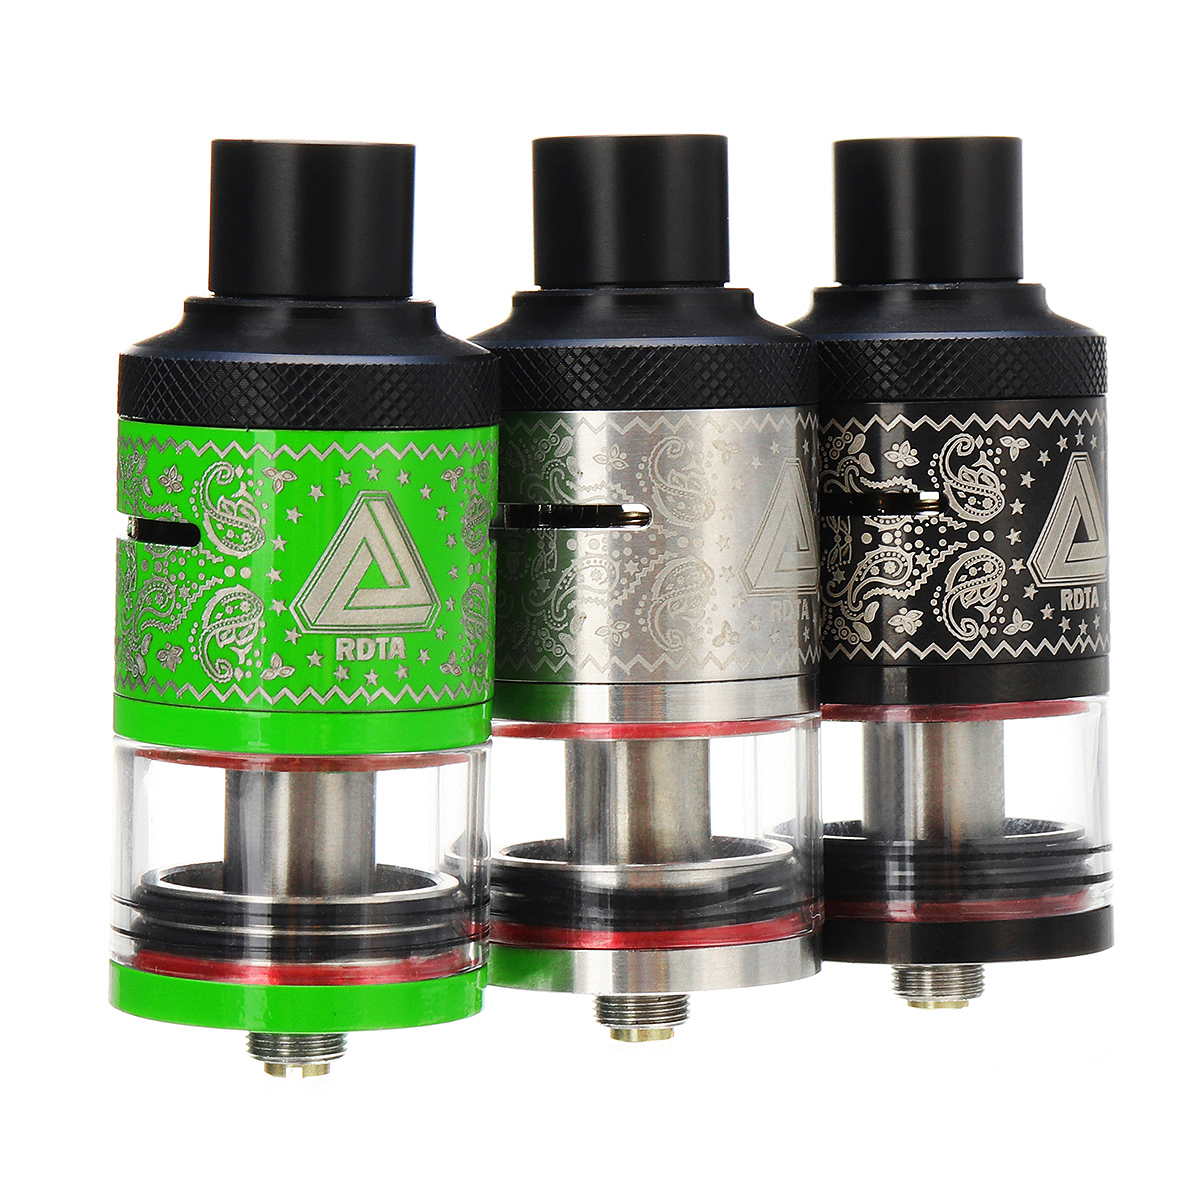 6.3ml RDTA Plus Tank Kit Electronic Cigarette Atomizer 510 Connector for IJoy Limitless